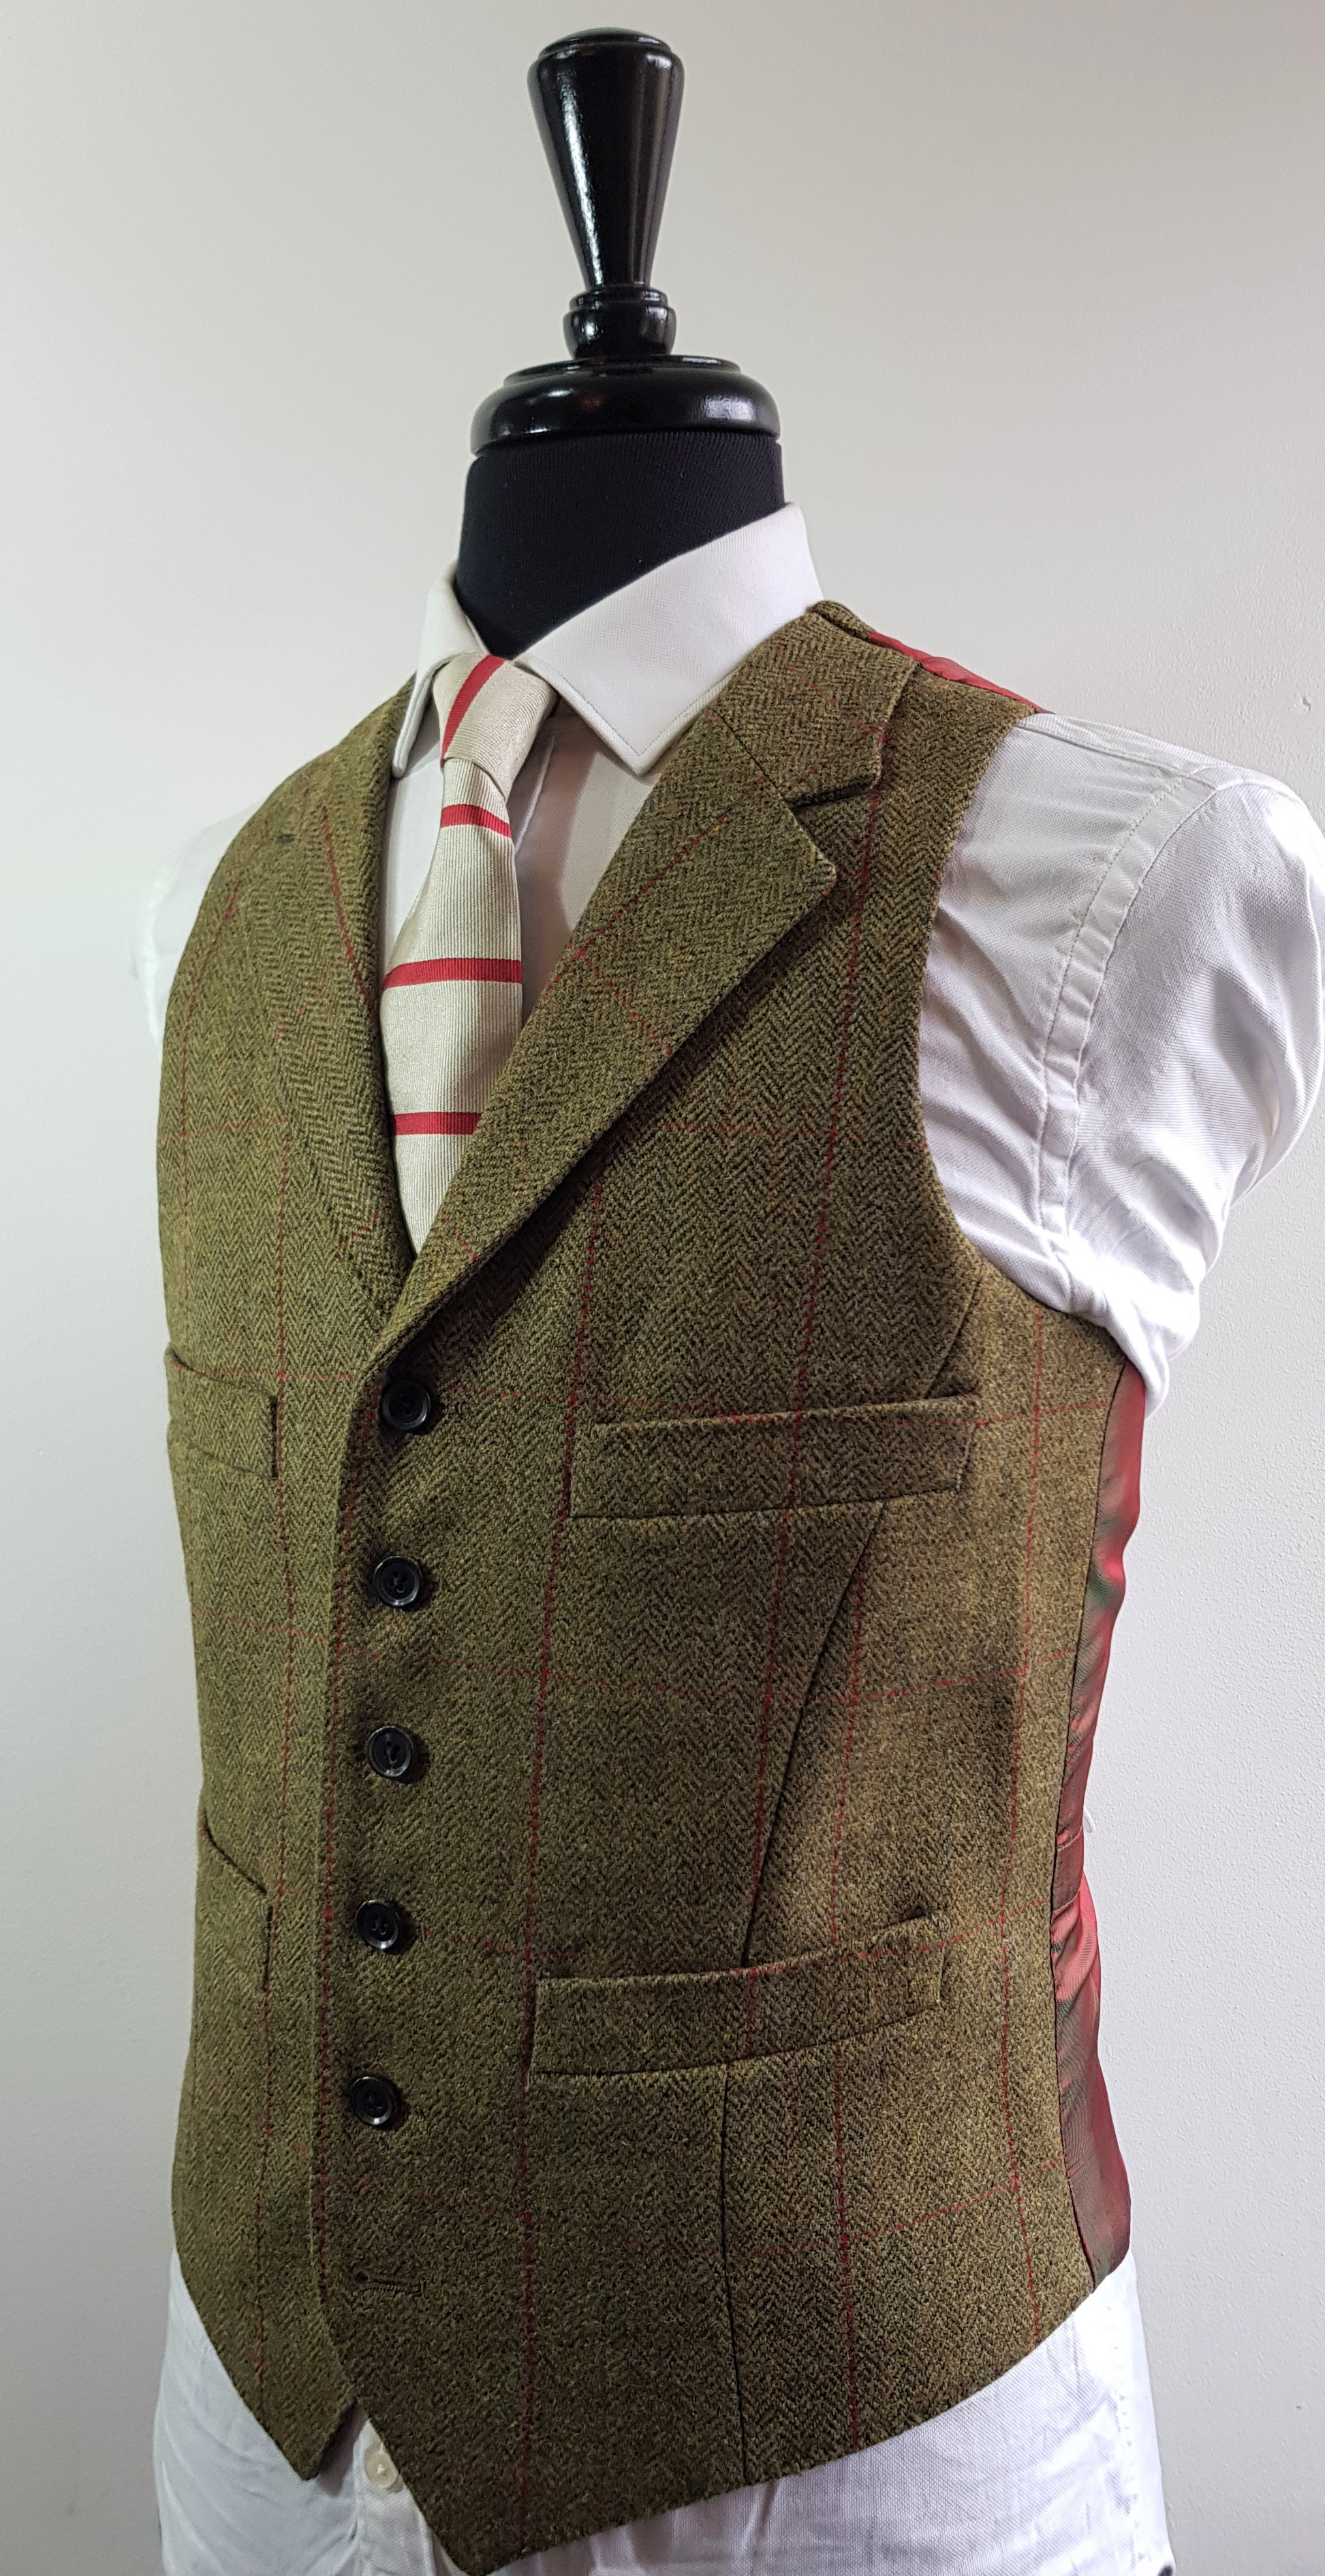 Tweed Jacket and Tweed Waistcoat (4).jpg